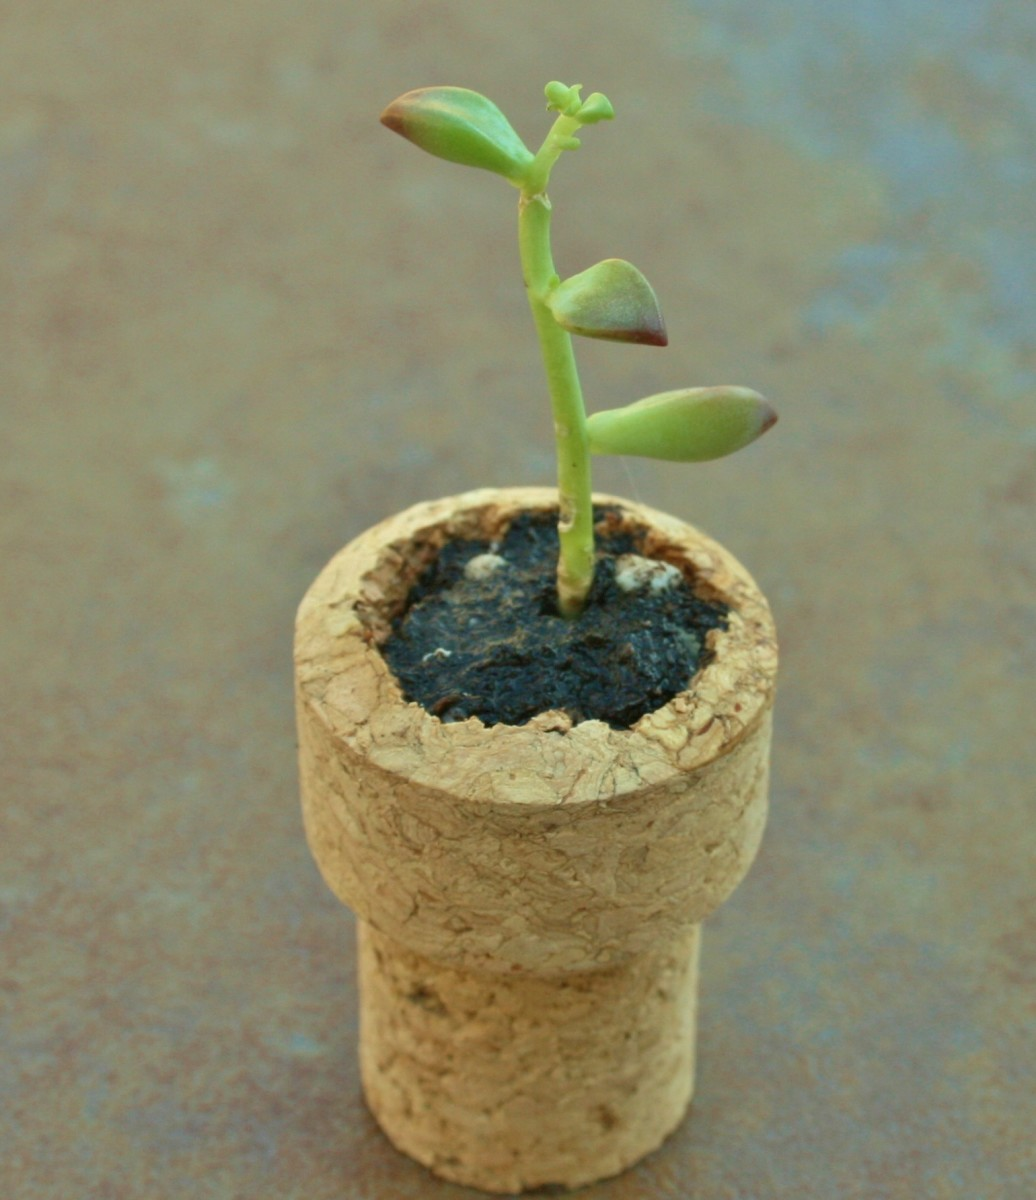 Carve out the distended end of the cork so that the mini planter sets on a flat bottom.